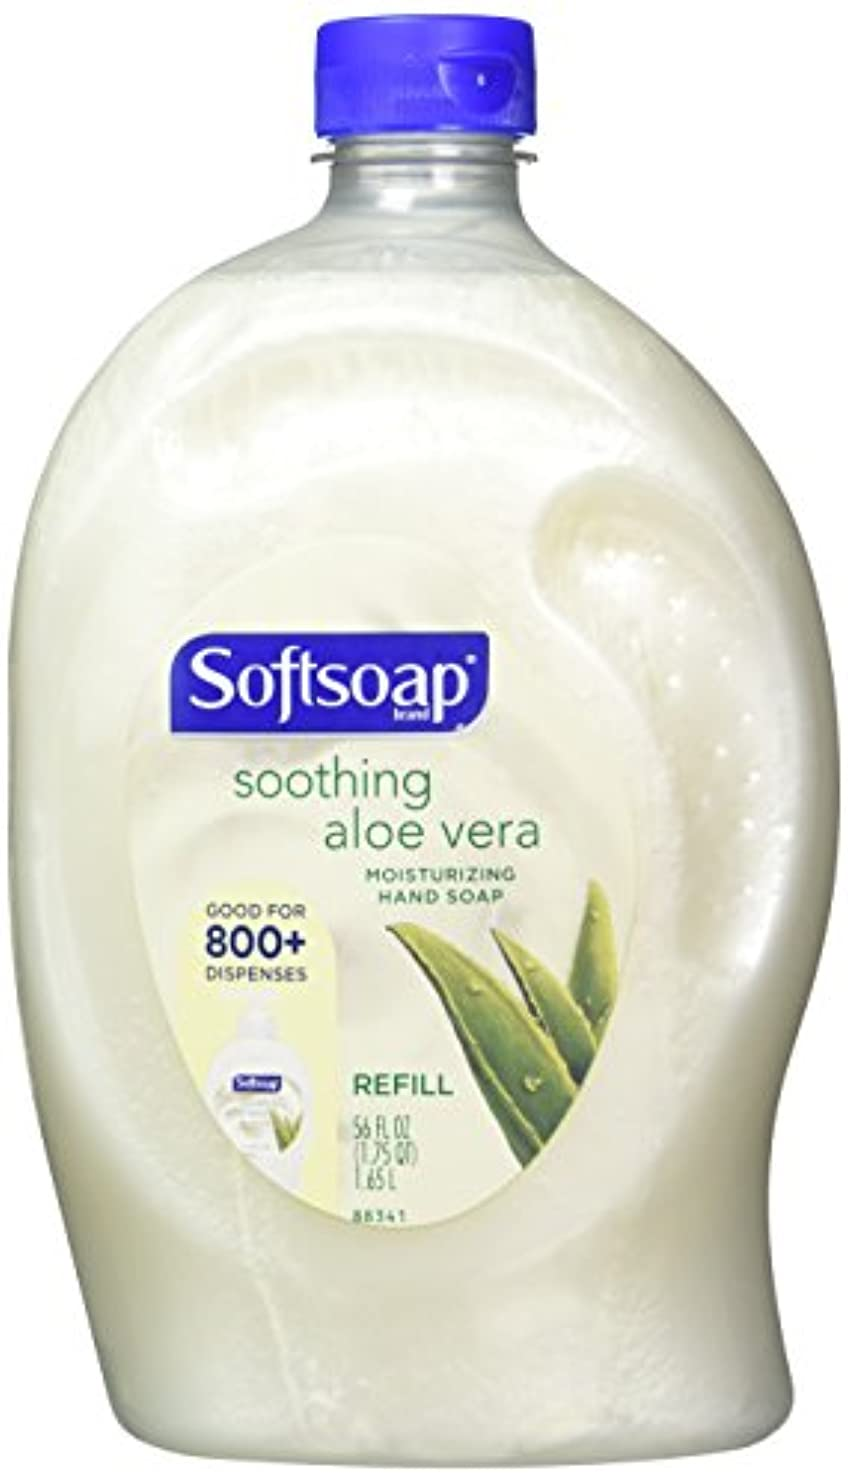 列車送った味わうSoftsoap液体Moisturizing Hand Soap Refill 56 fl oz, 2 Count ACP-2685